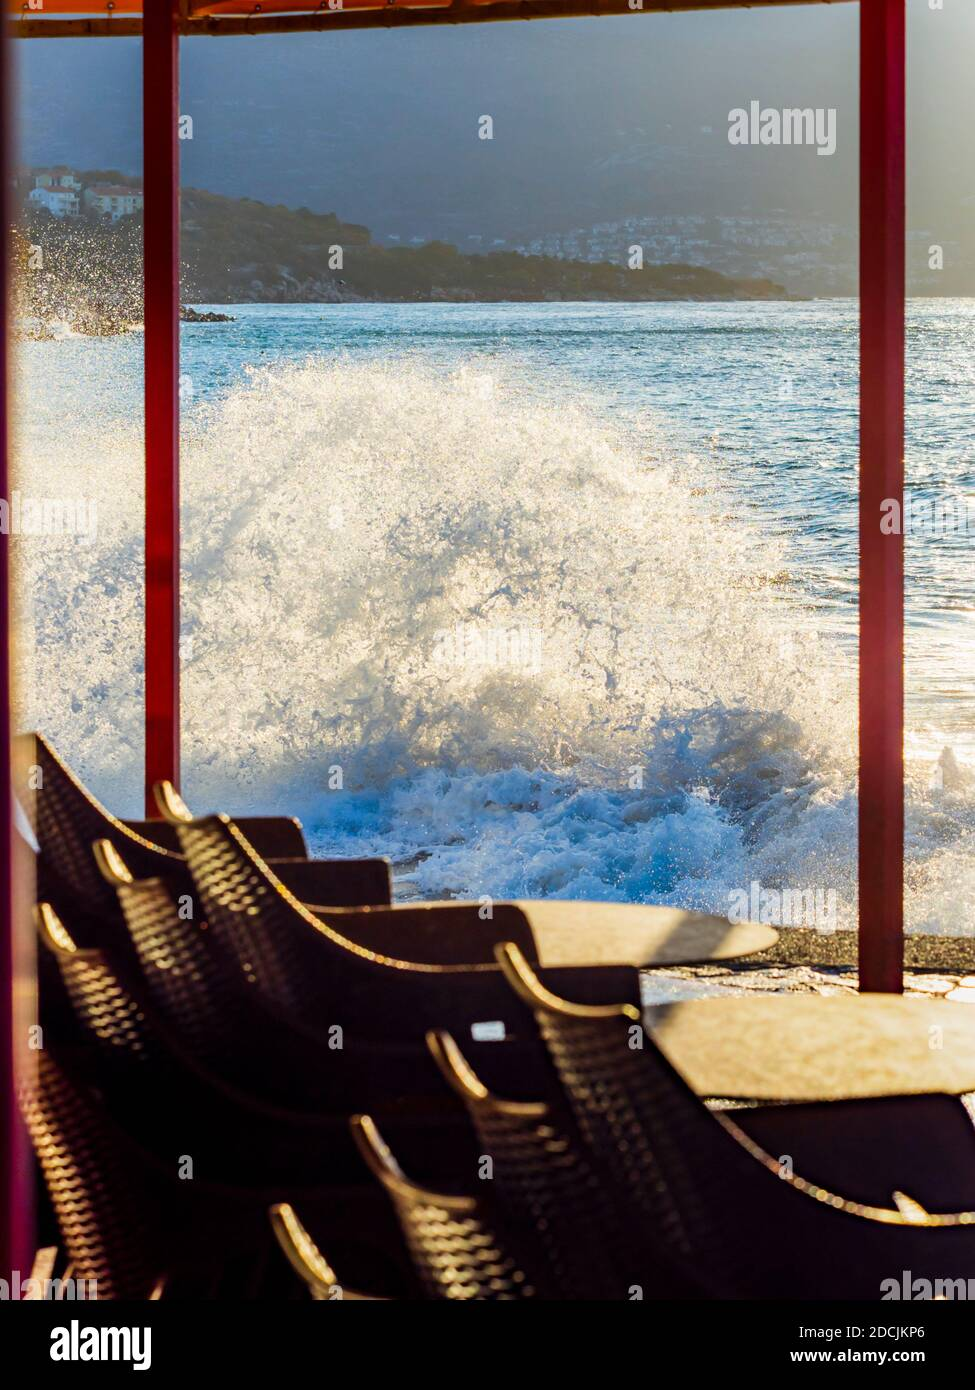 Framed severe windy stormy storm high sea waves lined stored chairs Novi Vinodolski in Croatia Stock Photo